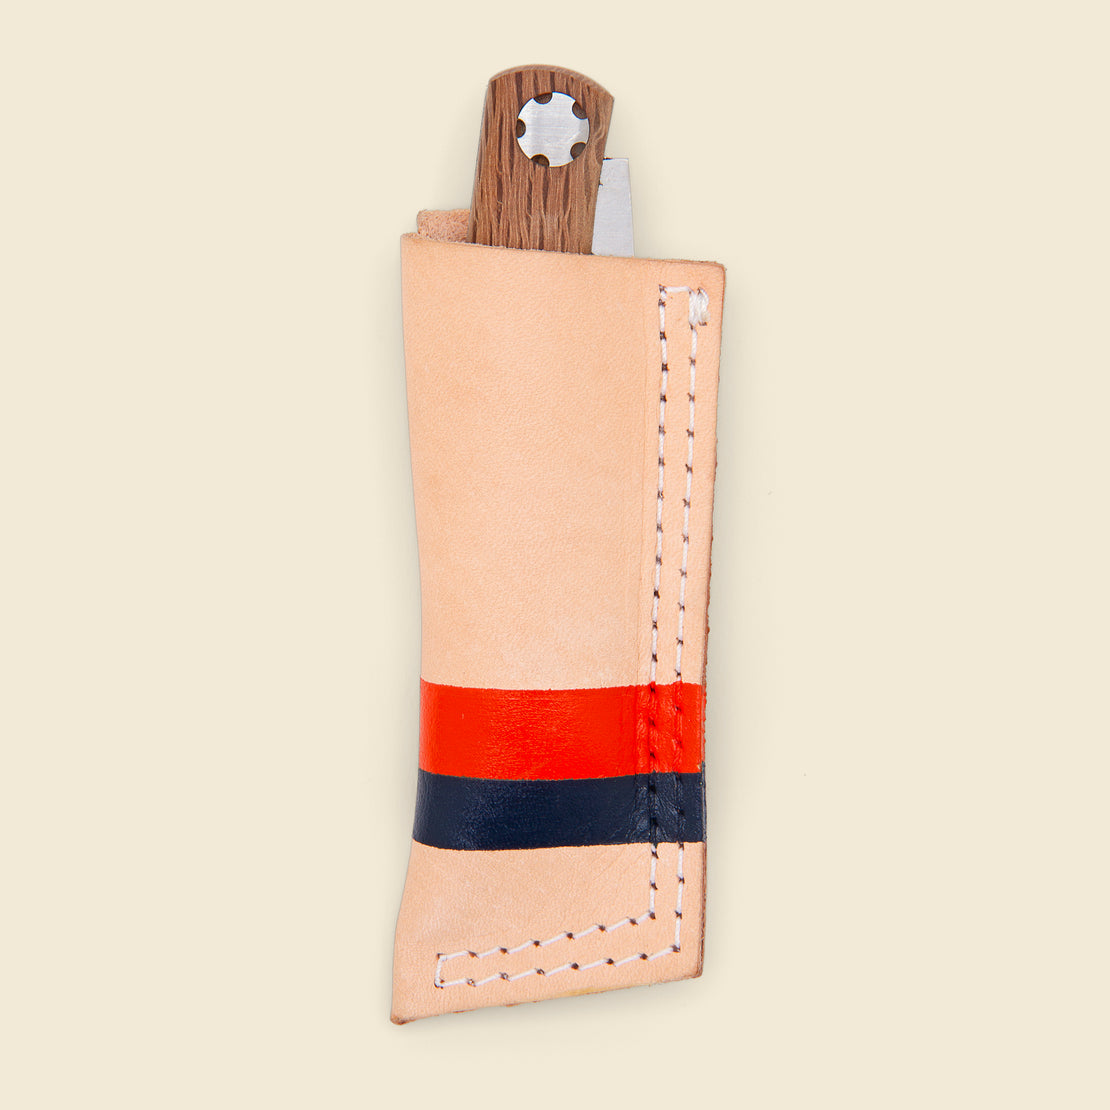 Son of a Sailor Leather Sheath with Joker Knife - Navy/Orange Painted